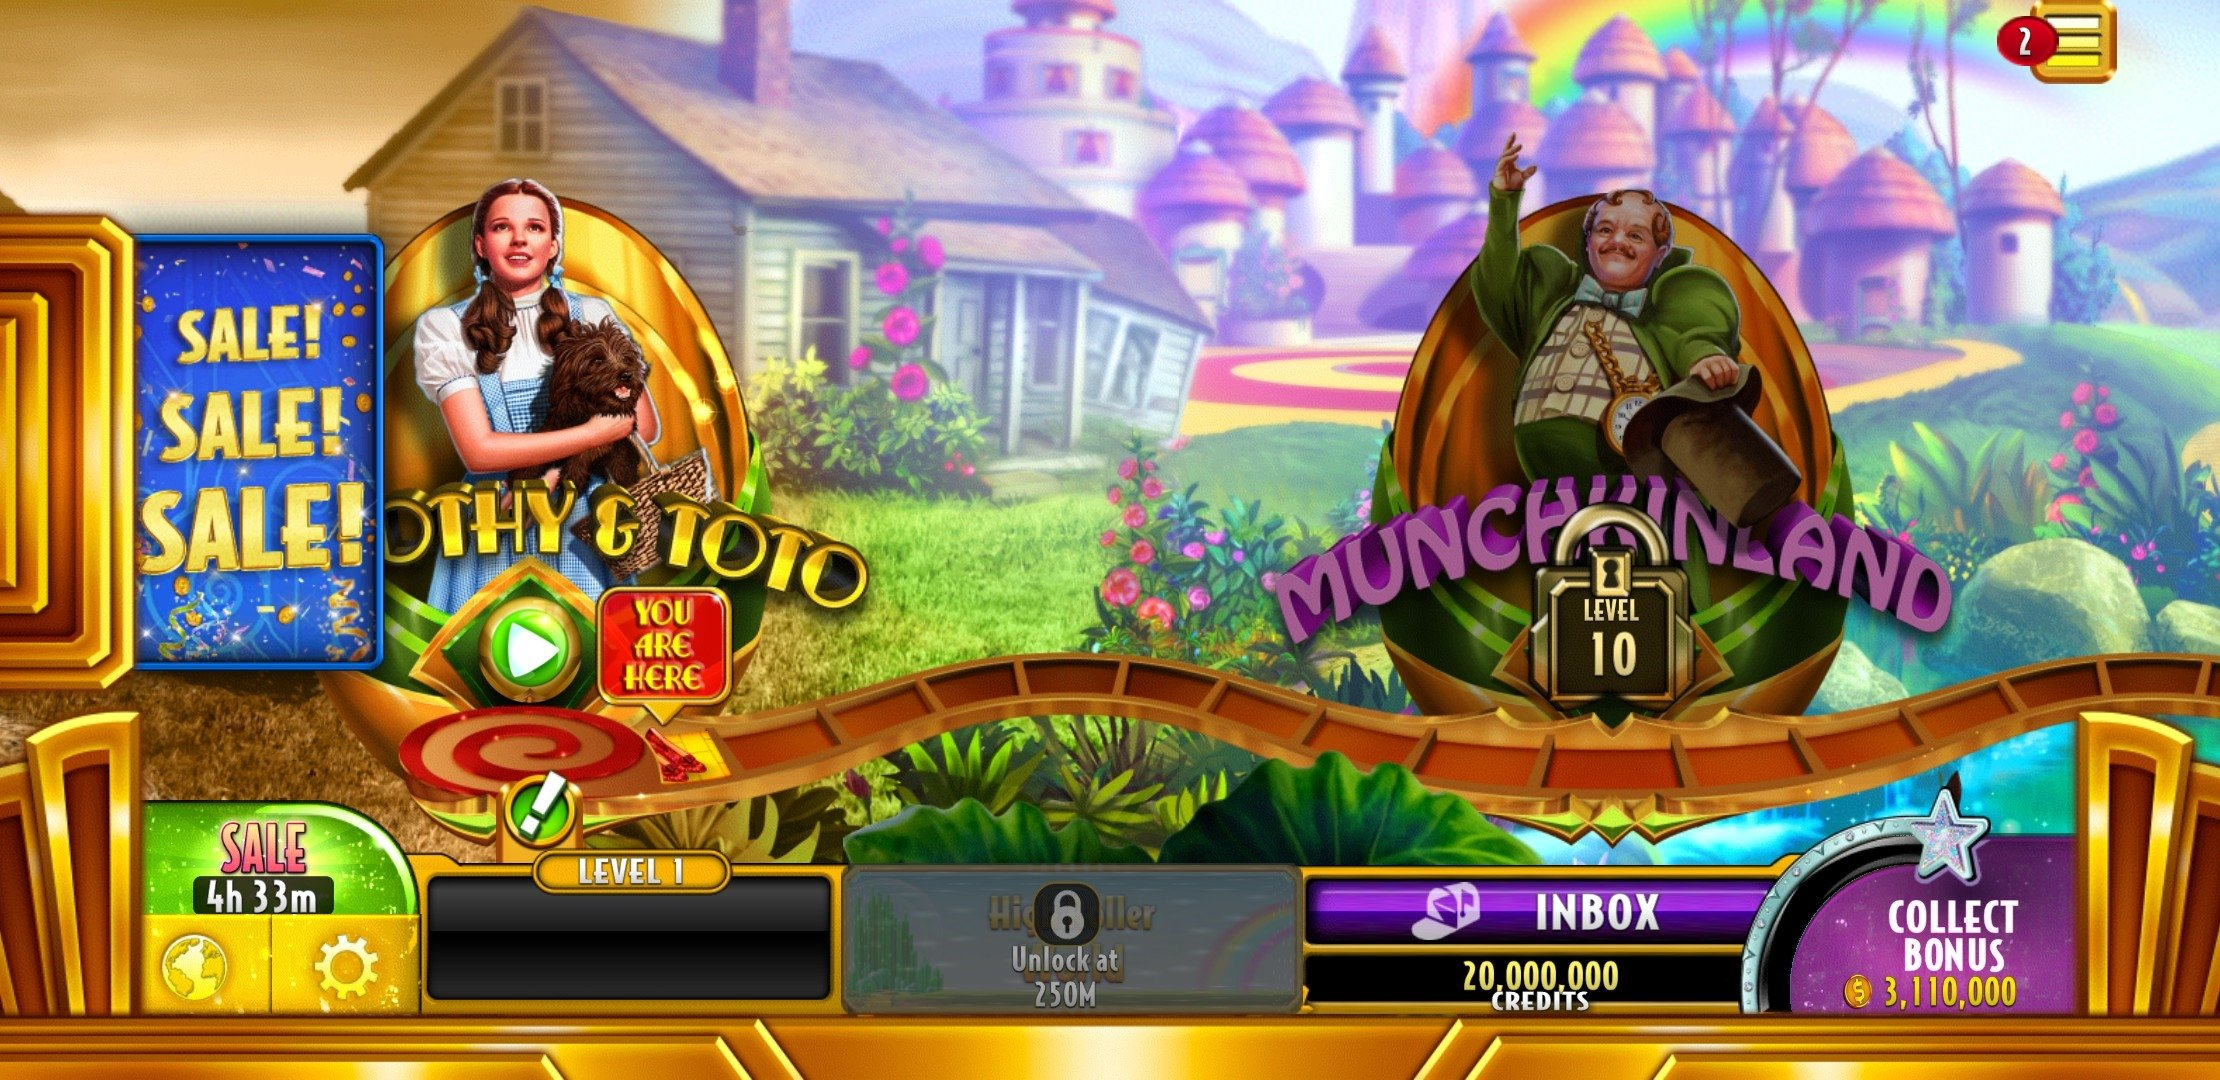 Wizard of oz slots online usa casinostar free slots cheats